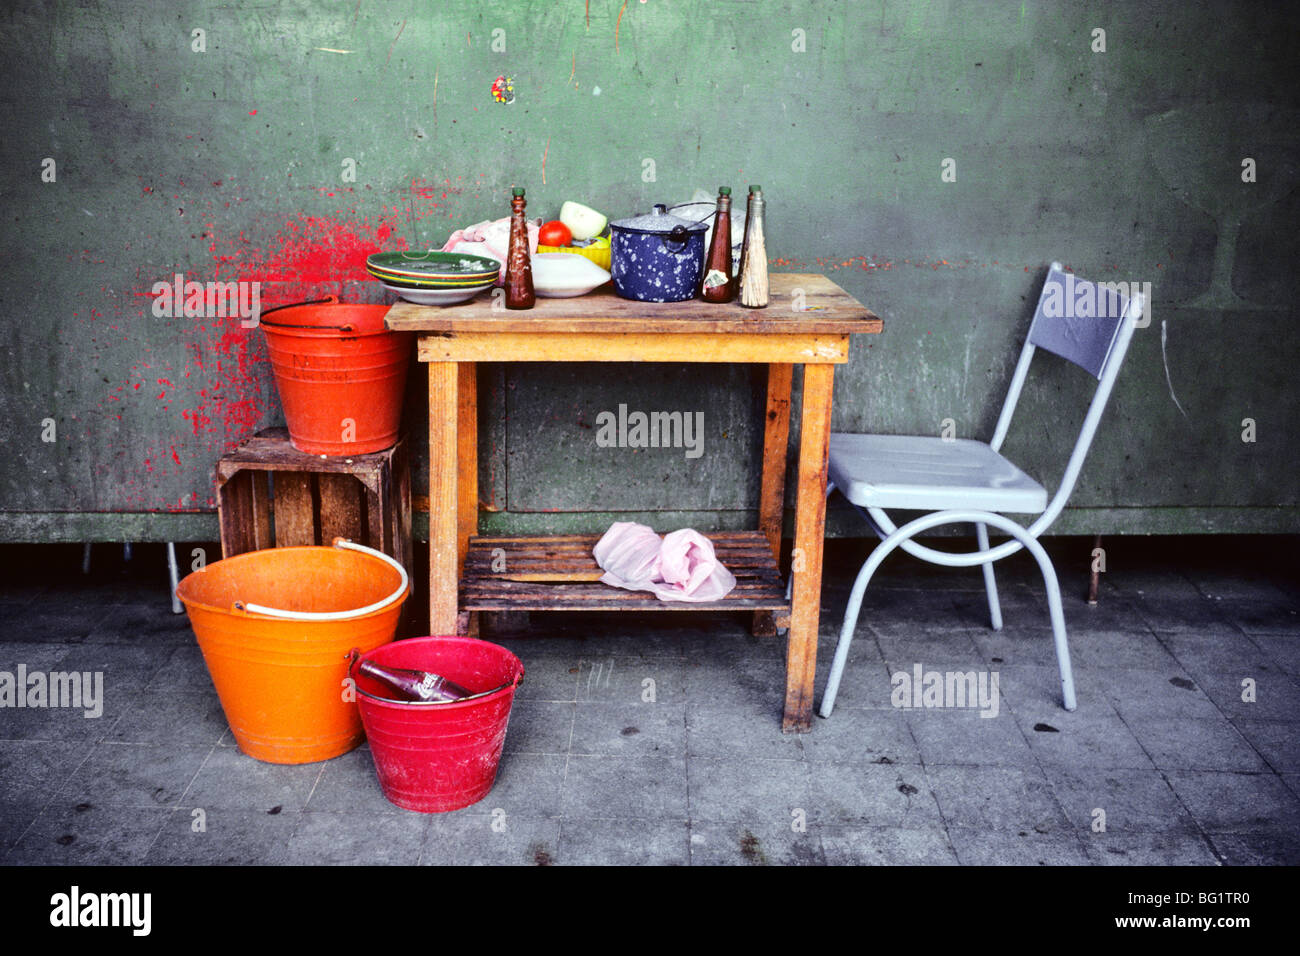 Tacos are made at this small table and dishes are washed in buckets ...